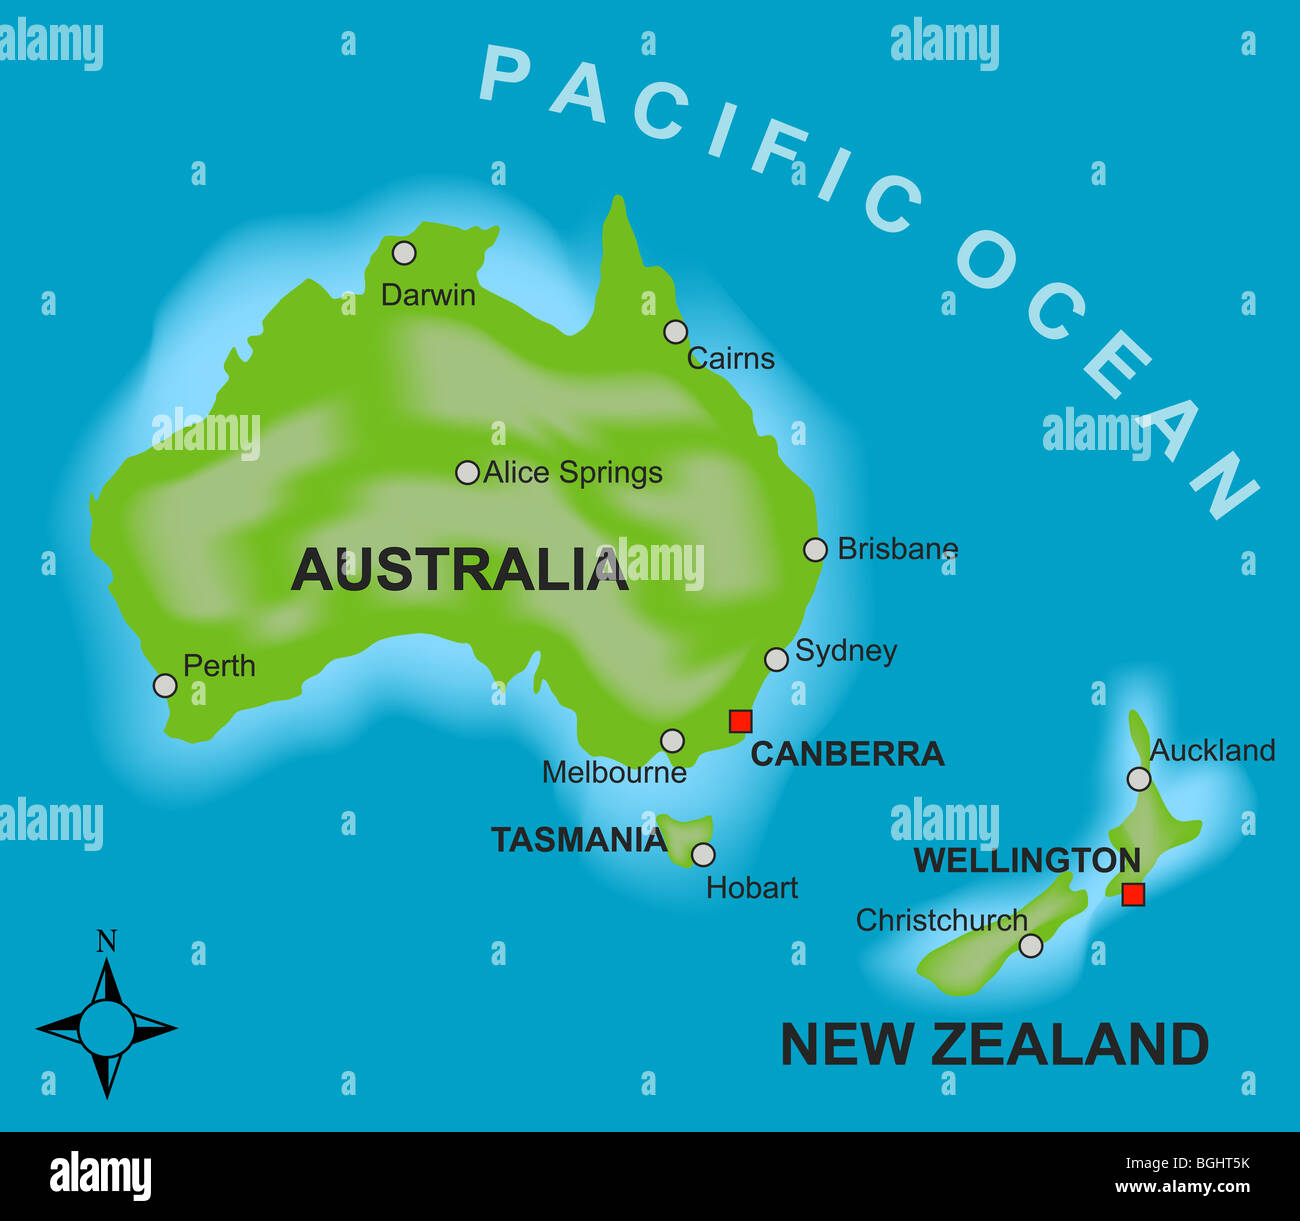 New Zealand Australia Map.A Stylized Map Showing The Countries Of Australia And New Zealand